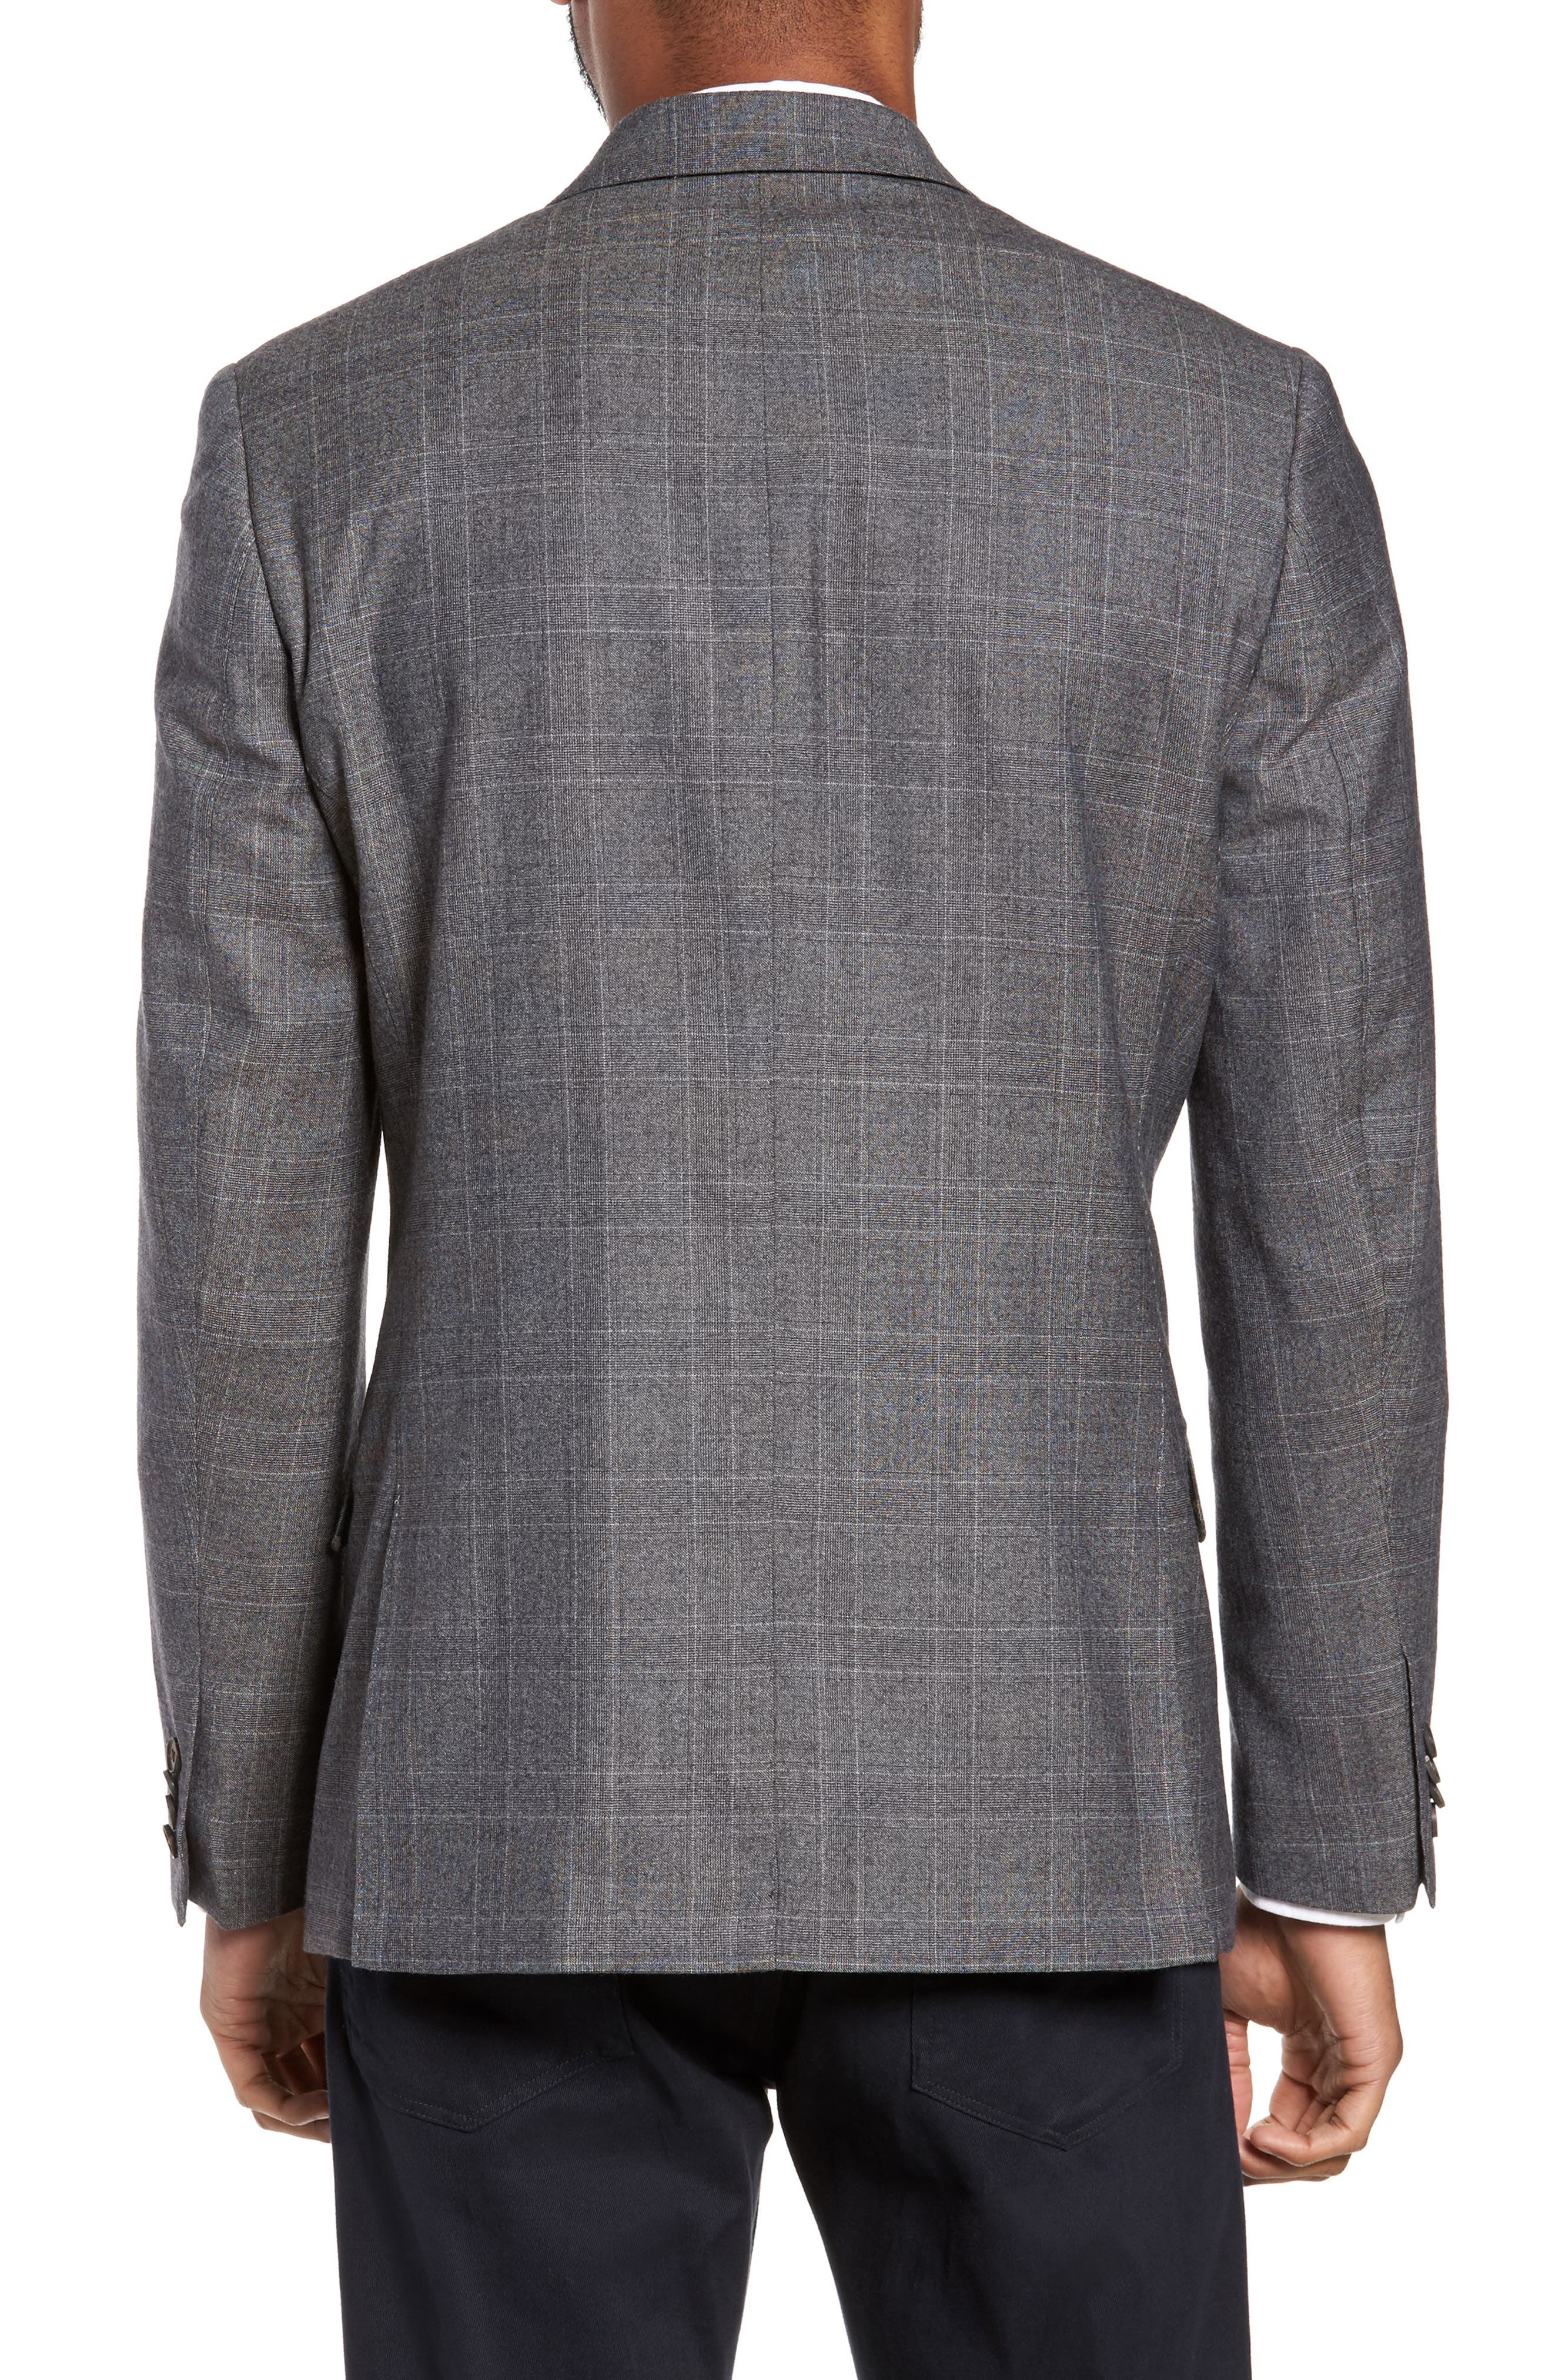 Gryning Trim Fit Plaid Wool Blend Sport Coat,                             Alternate thumbnail 2, color,                             Quiet Gray